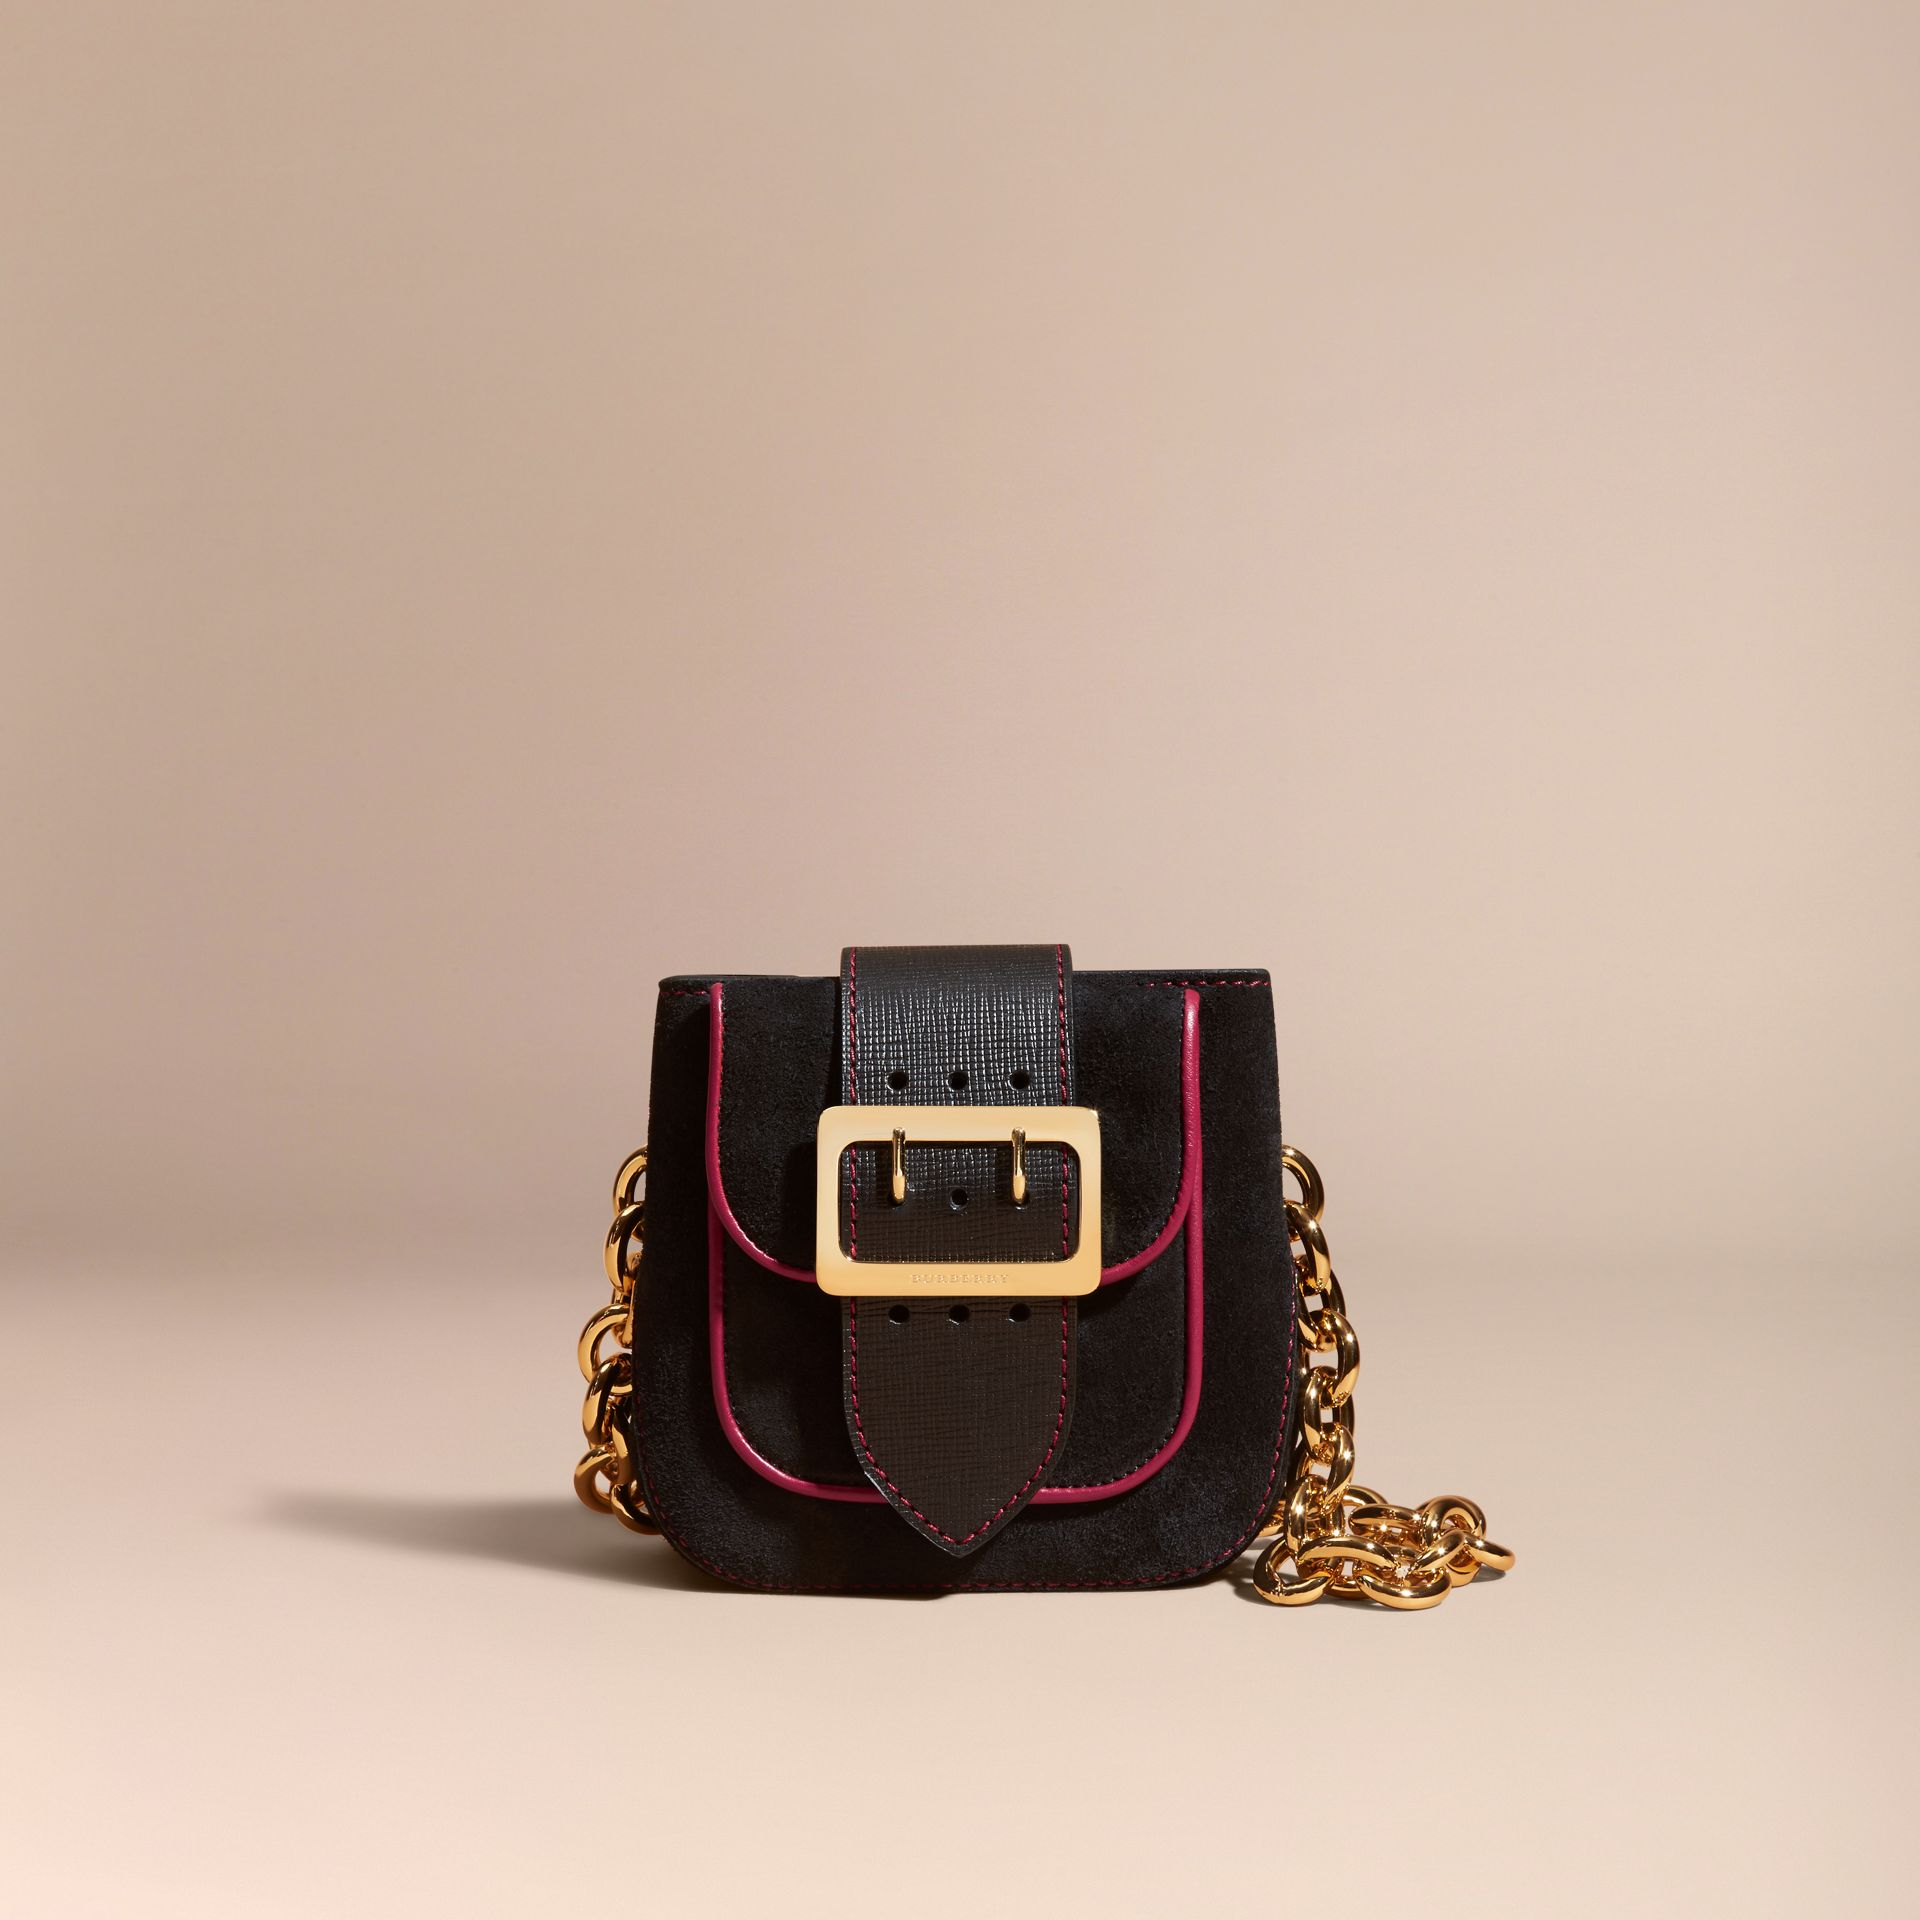 Black The Small Square Buckle Bag in Suede and Leather Black - gallery image 9